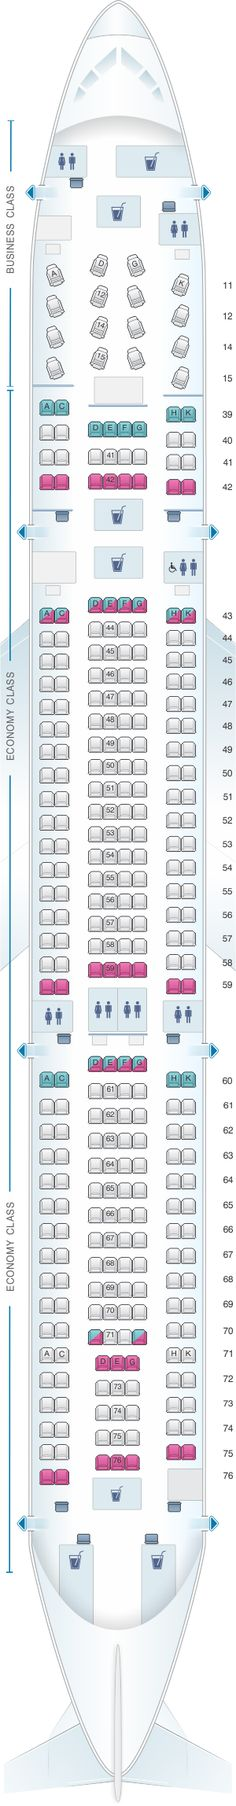 cathay pacific 333 seat map Cathay Pacific Airways cathay pacific 333 seat map